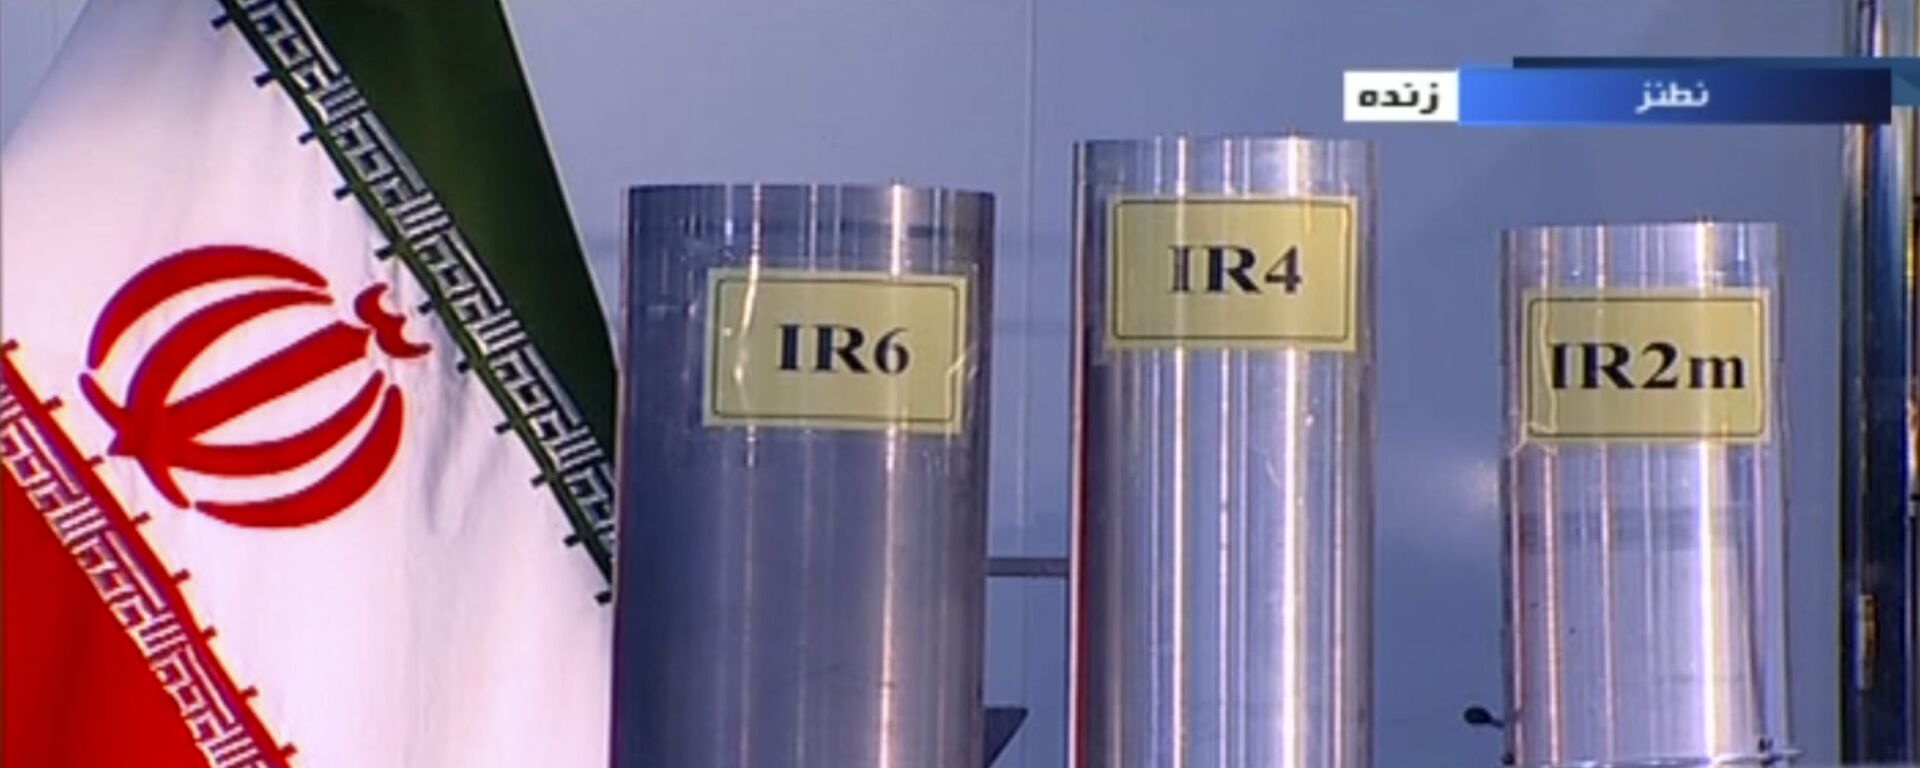 In this June 6, 2018 frame grab from Islamic Republic Iran Broadcasting, IRIB, state-run TV, three versions of domestically-built centrifuges are shown in a live TV program from Natanz, an Iranian uranium enrichment plant, in Iran - Sputnik International, 1920, 13.06.2021